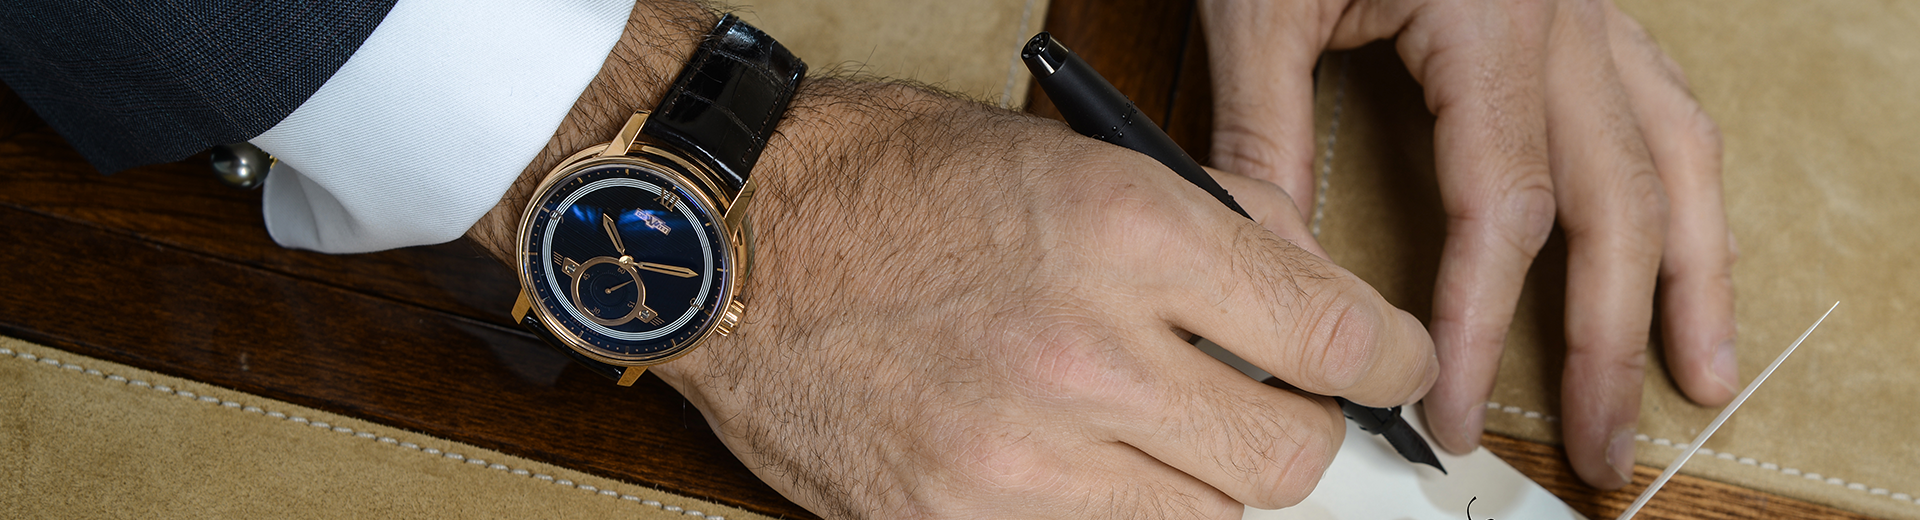 The DeWitt Academia Small Second Rose Gold – Simple Sophistication Defined